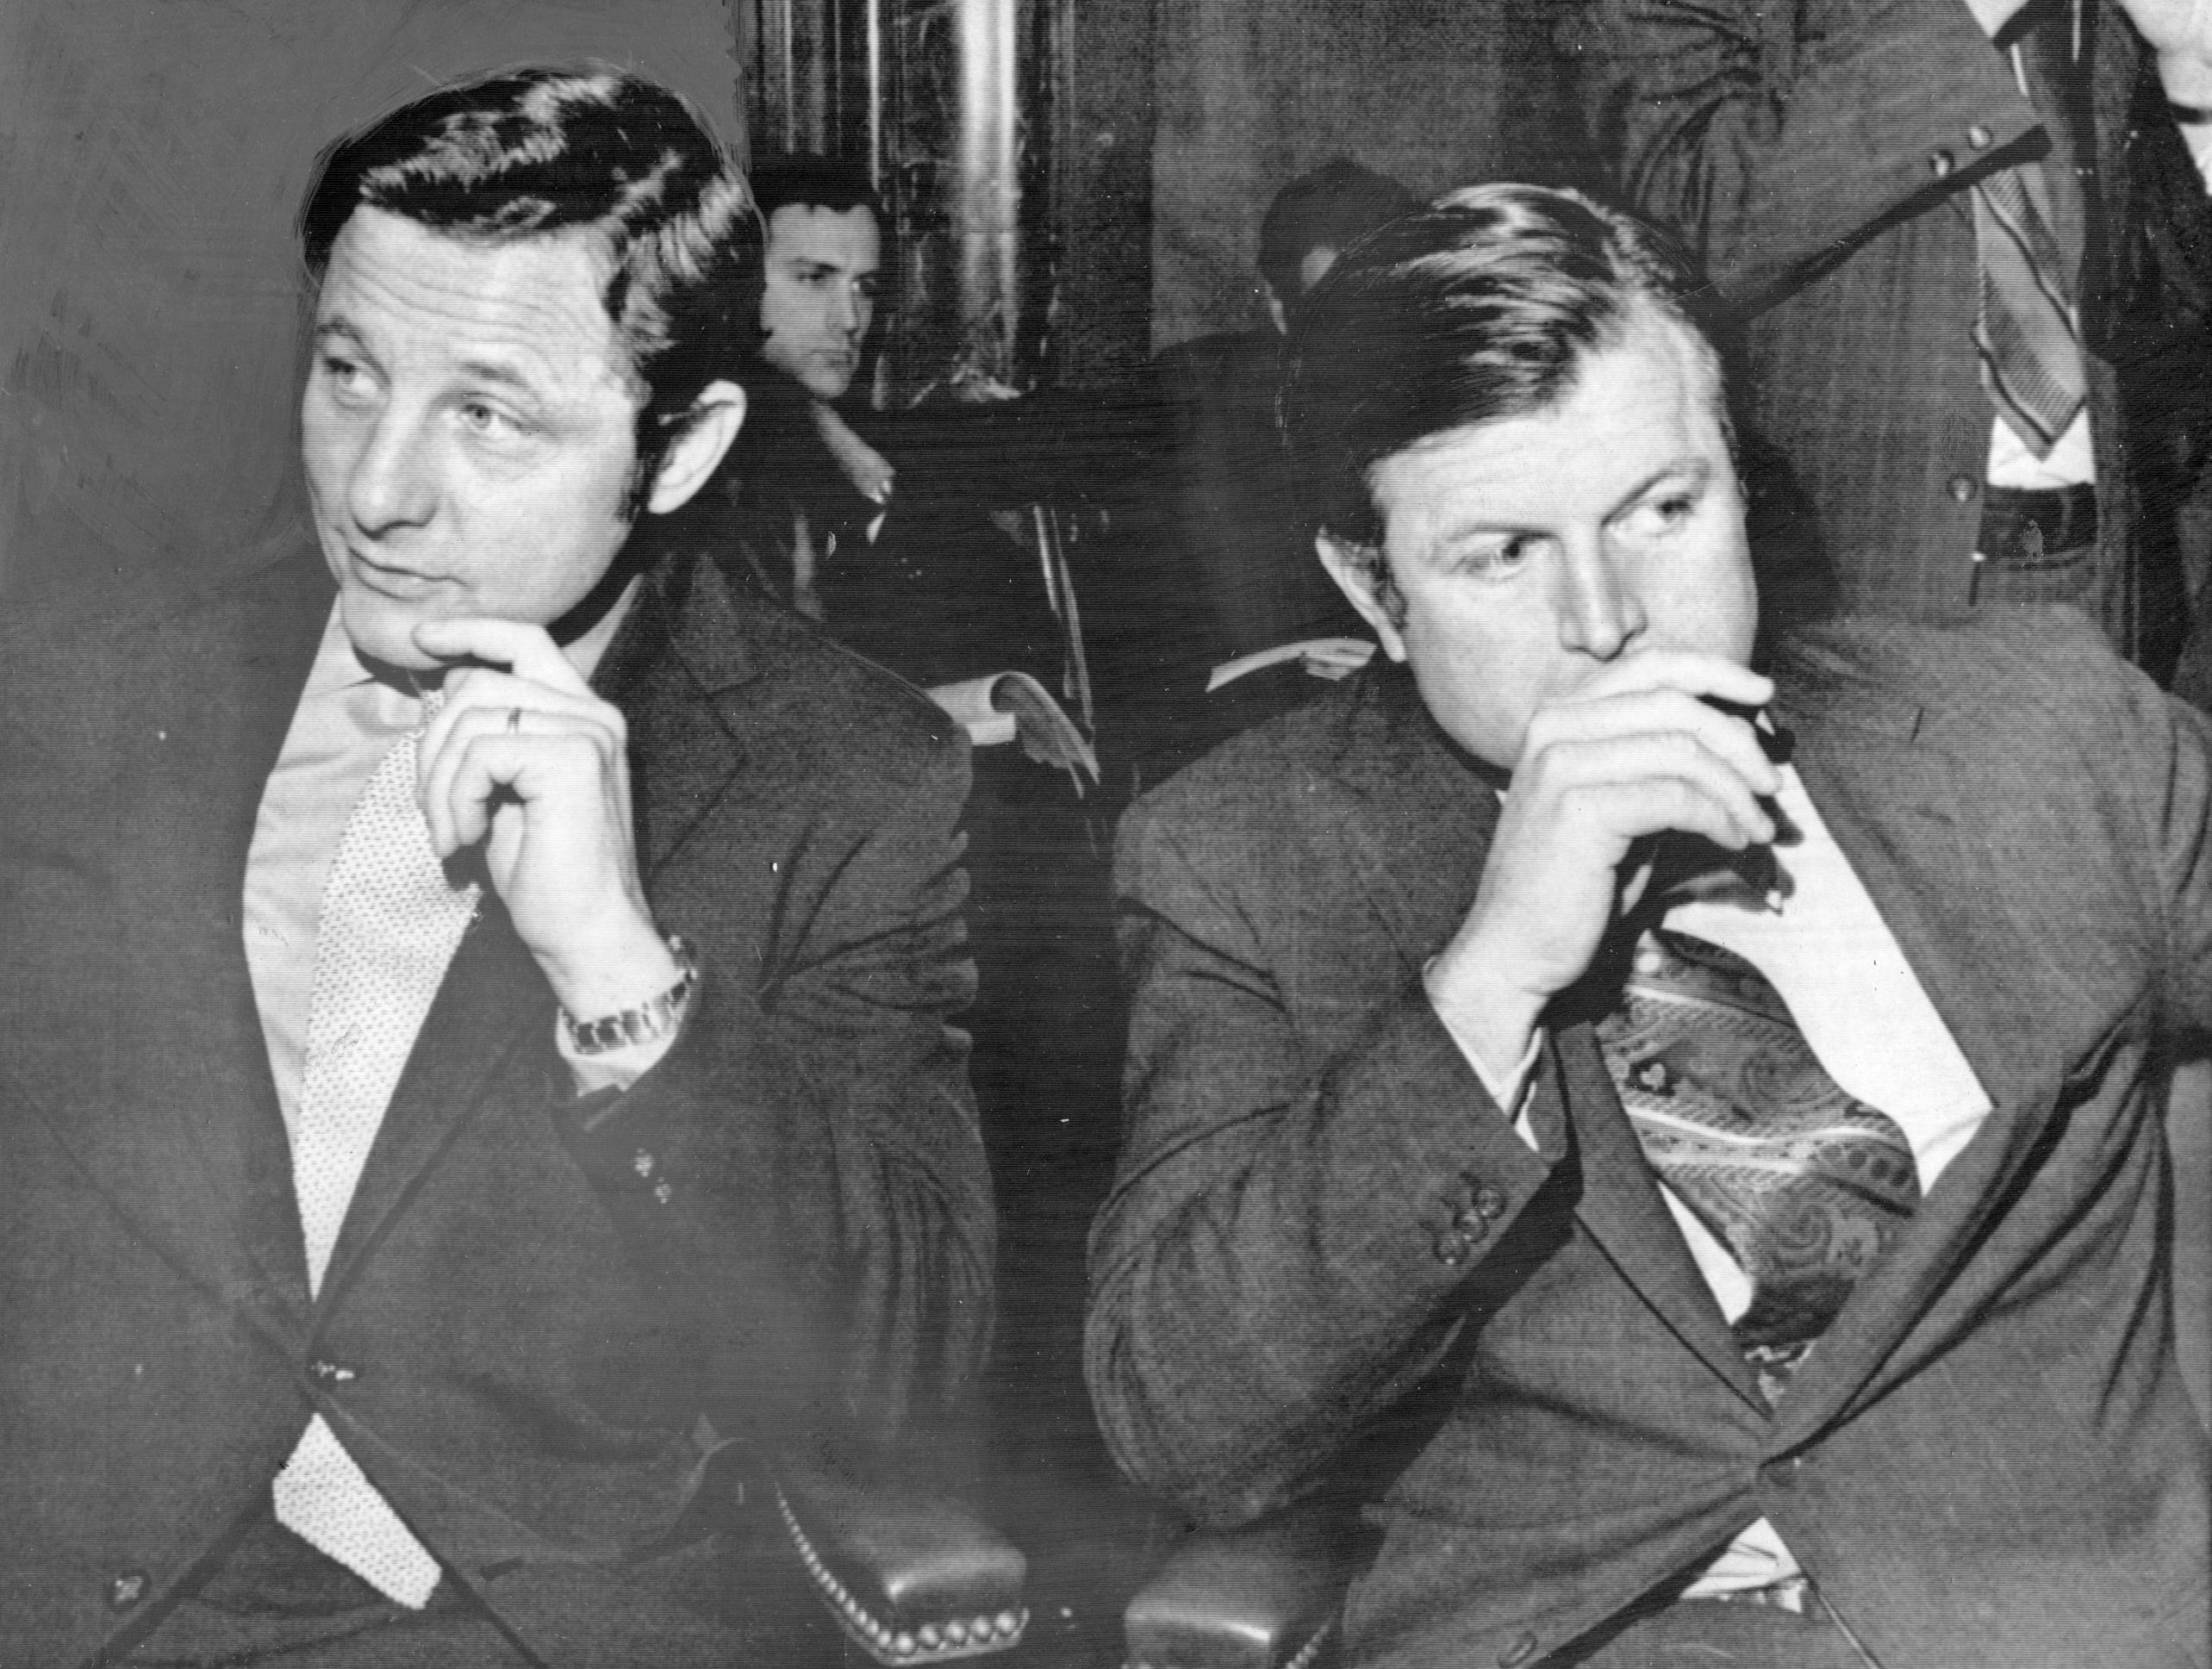 Senators Birch Bayh (D-Ind.), left, and Edward M. Kennedy (D-Mass.), members of the Judiciary Committee which had been screening Supreme Court nominees, await the start of  hearings which included testimony from opposing witnesses on Nov. 10, 1971.